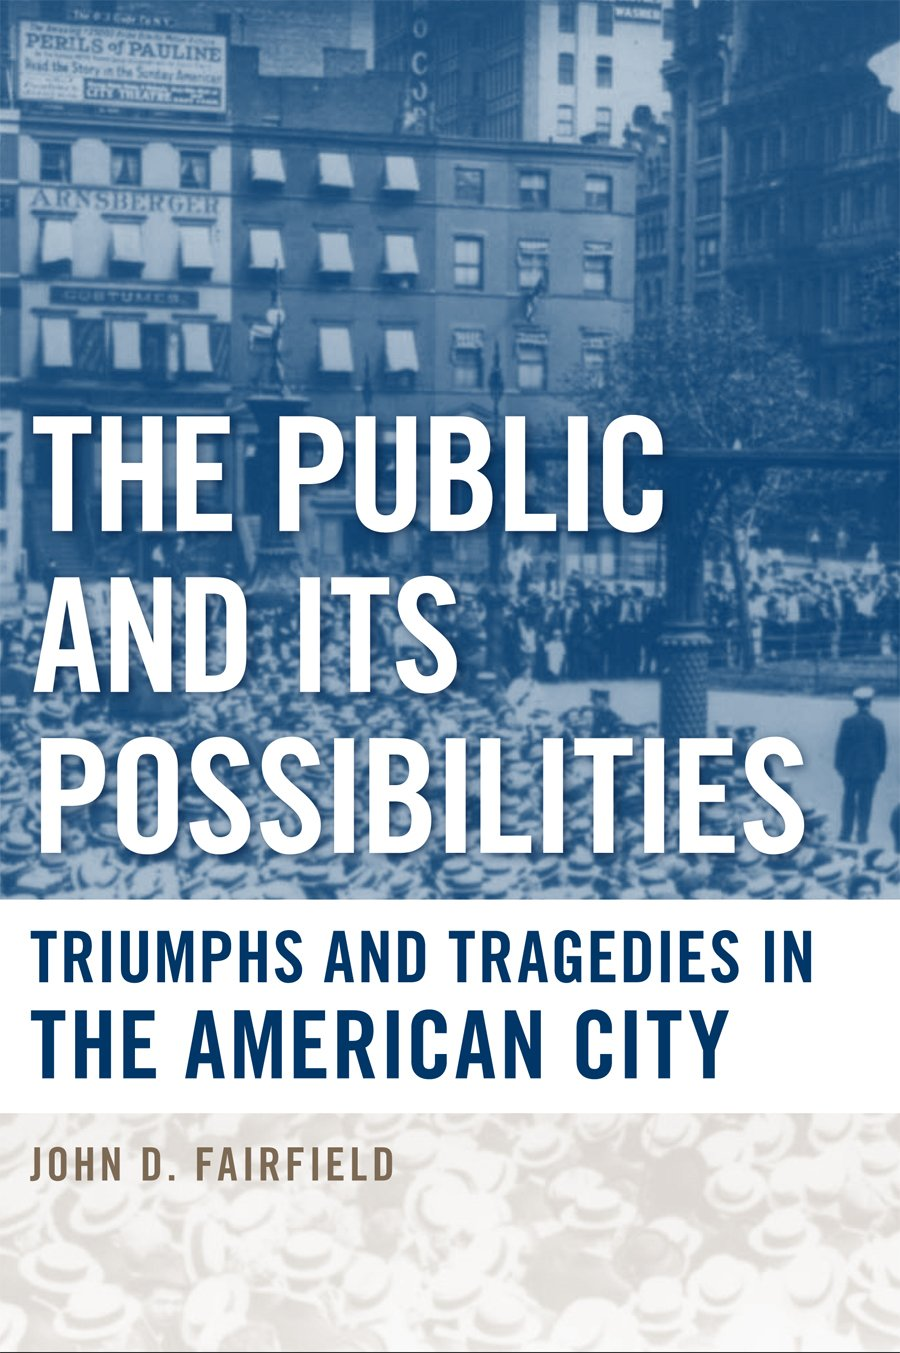 The Public and Its Possibilities: Triumphs and Tragedies in the American City (Urban Life, Landscape and Policy) pdf